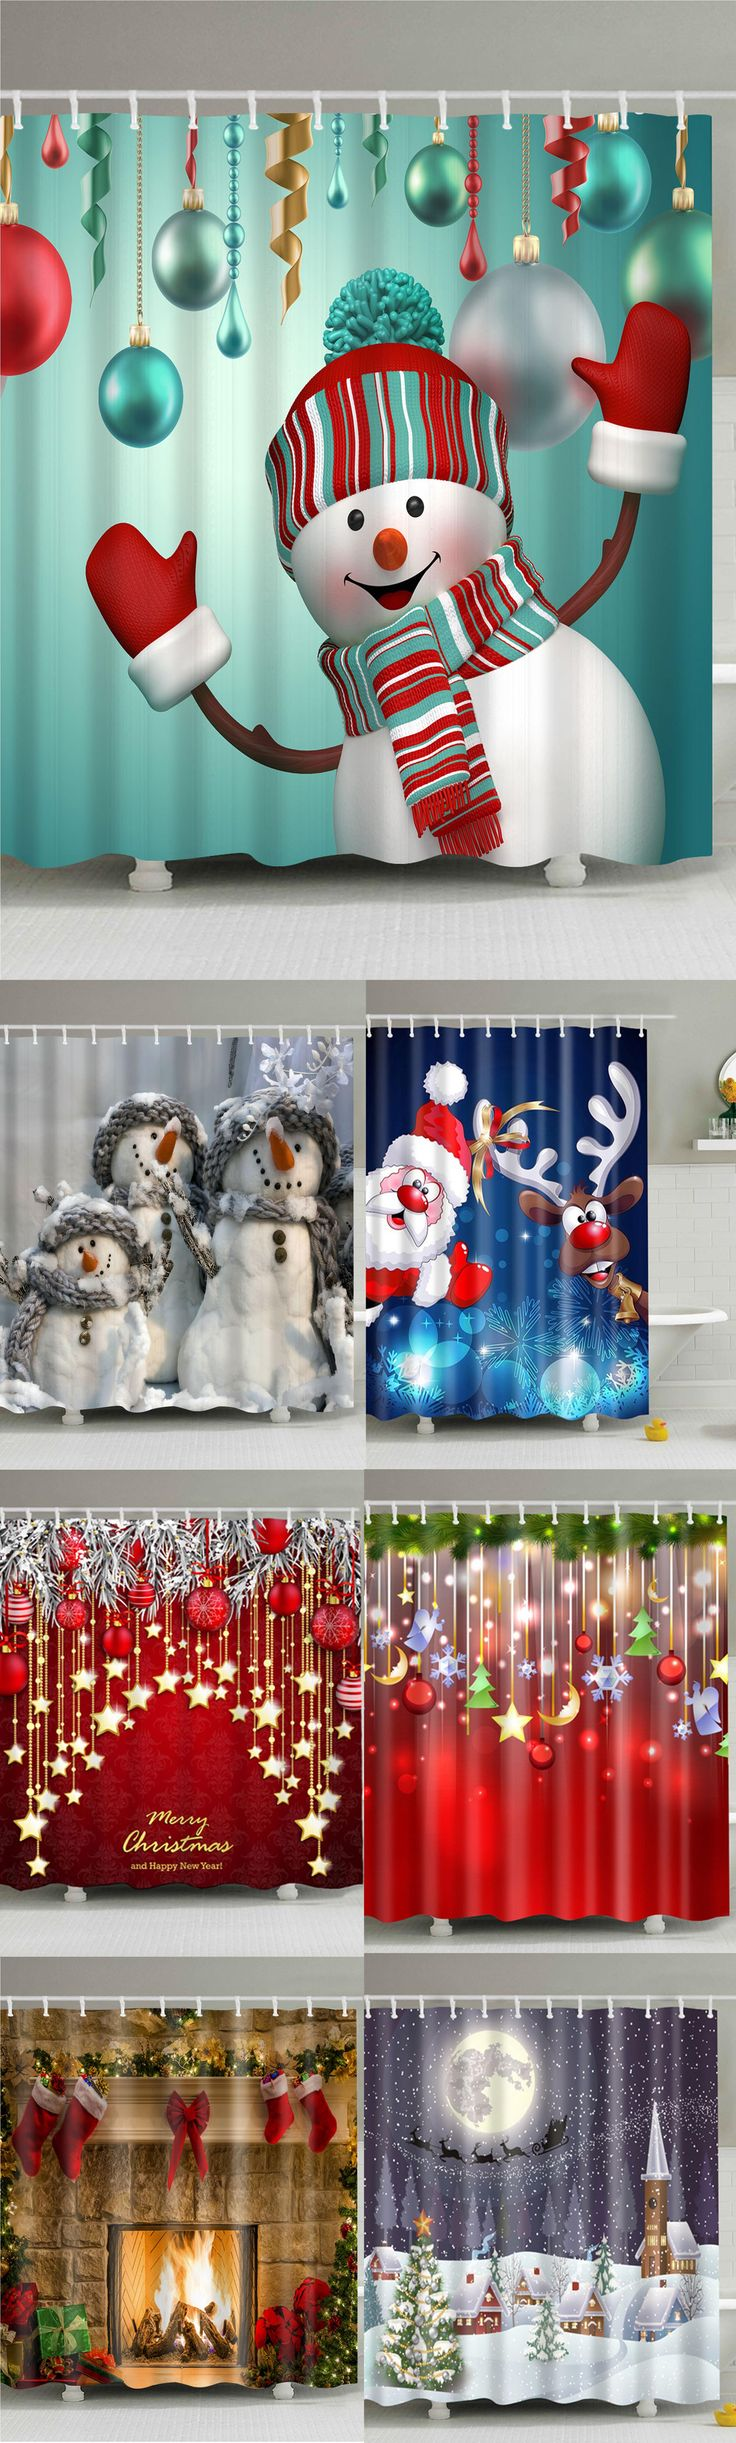 Up to 80% off and Extra $15 OFF, Rosewholesale christmas decoration shower curtains | Rosewholesale,rosewholesale.com,rosewholesale home decor,home decoration,Christmas decor,Christmas decor diy,Christmas decoration,shower curtain,Christmas crafts,bath kitchen, christmas | #Rosewholesale #showercurtain #christmas #ChristmasDecor